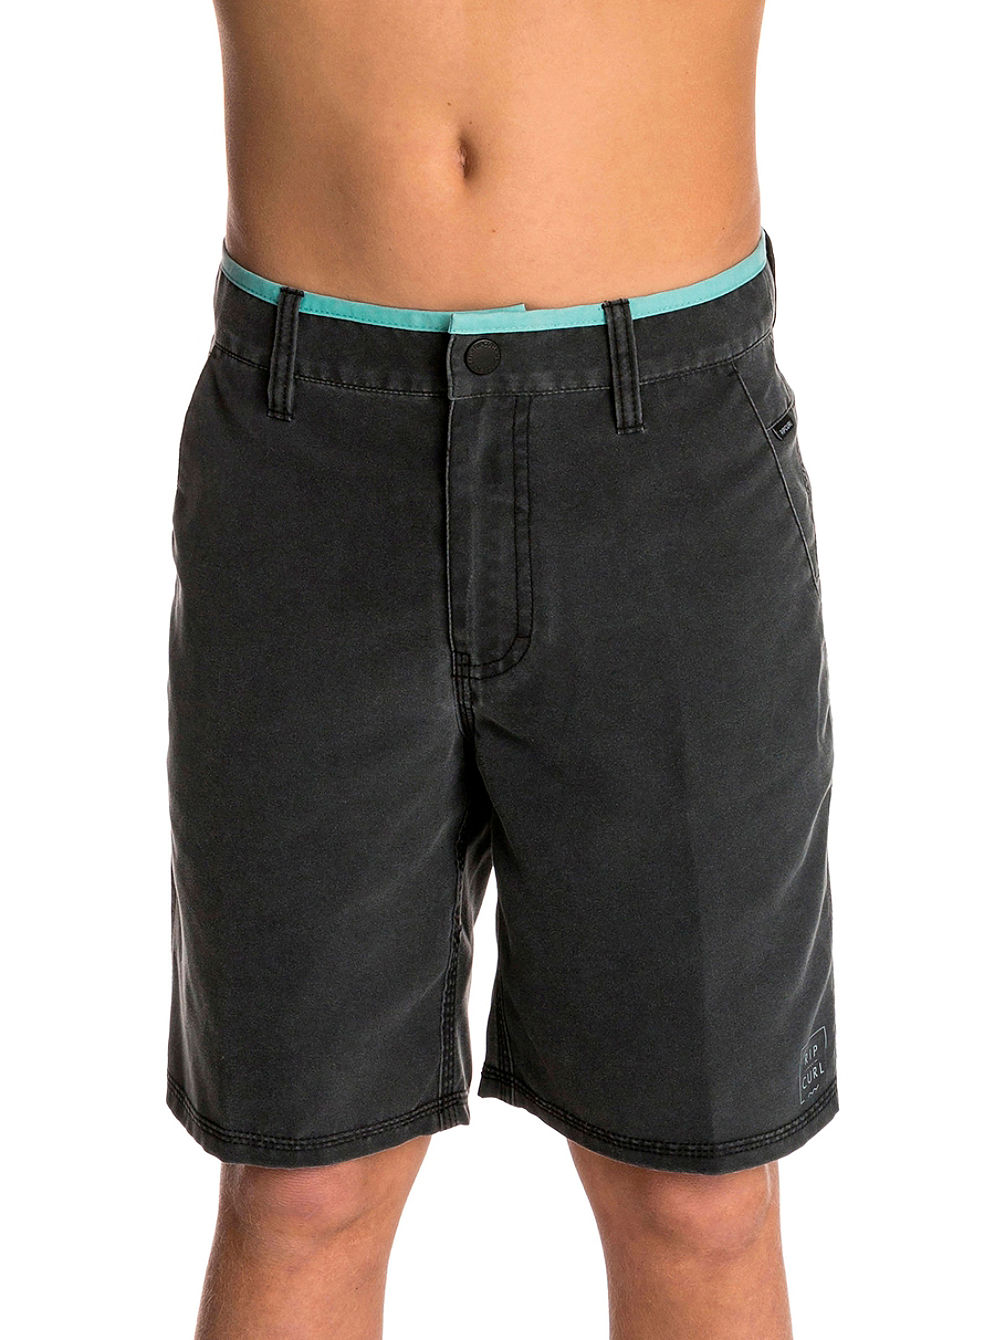 "Update Chino Boardwalk 17"" Shorts"